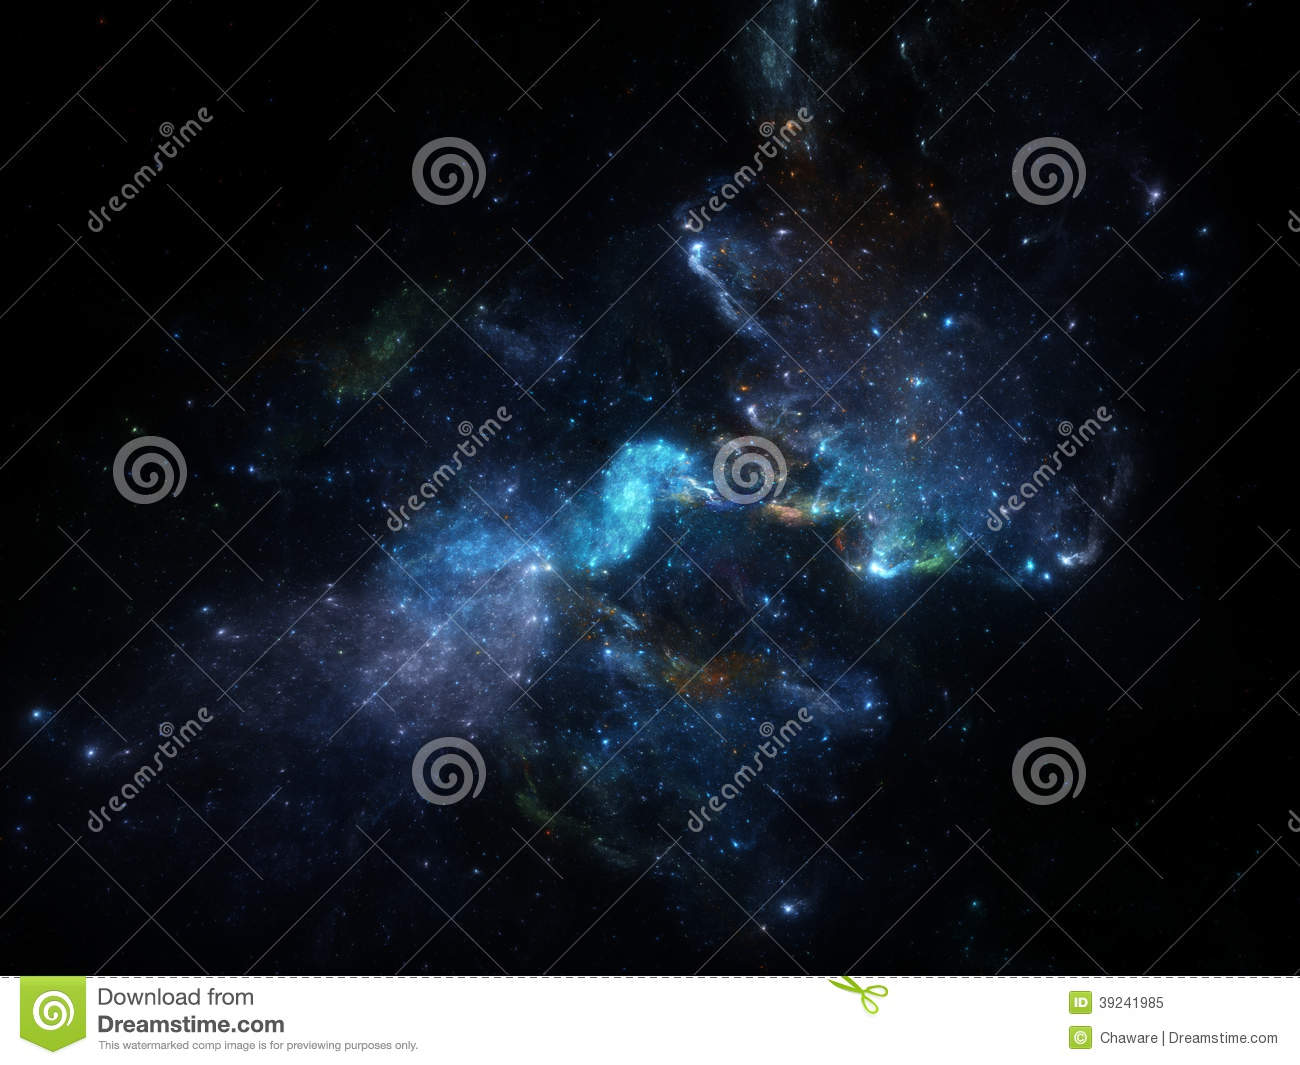 Deep spcae background with nebula and galaxies stock for Space created